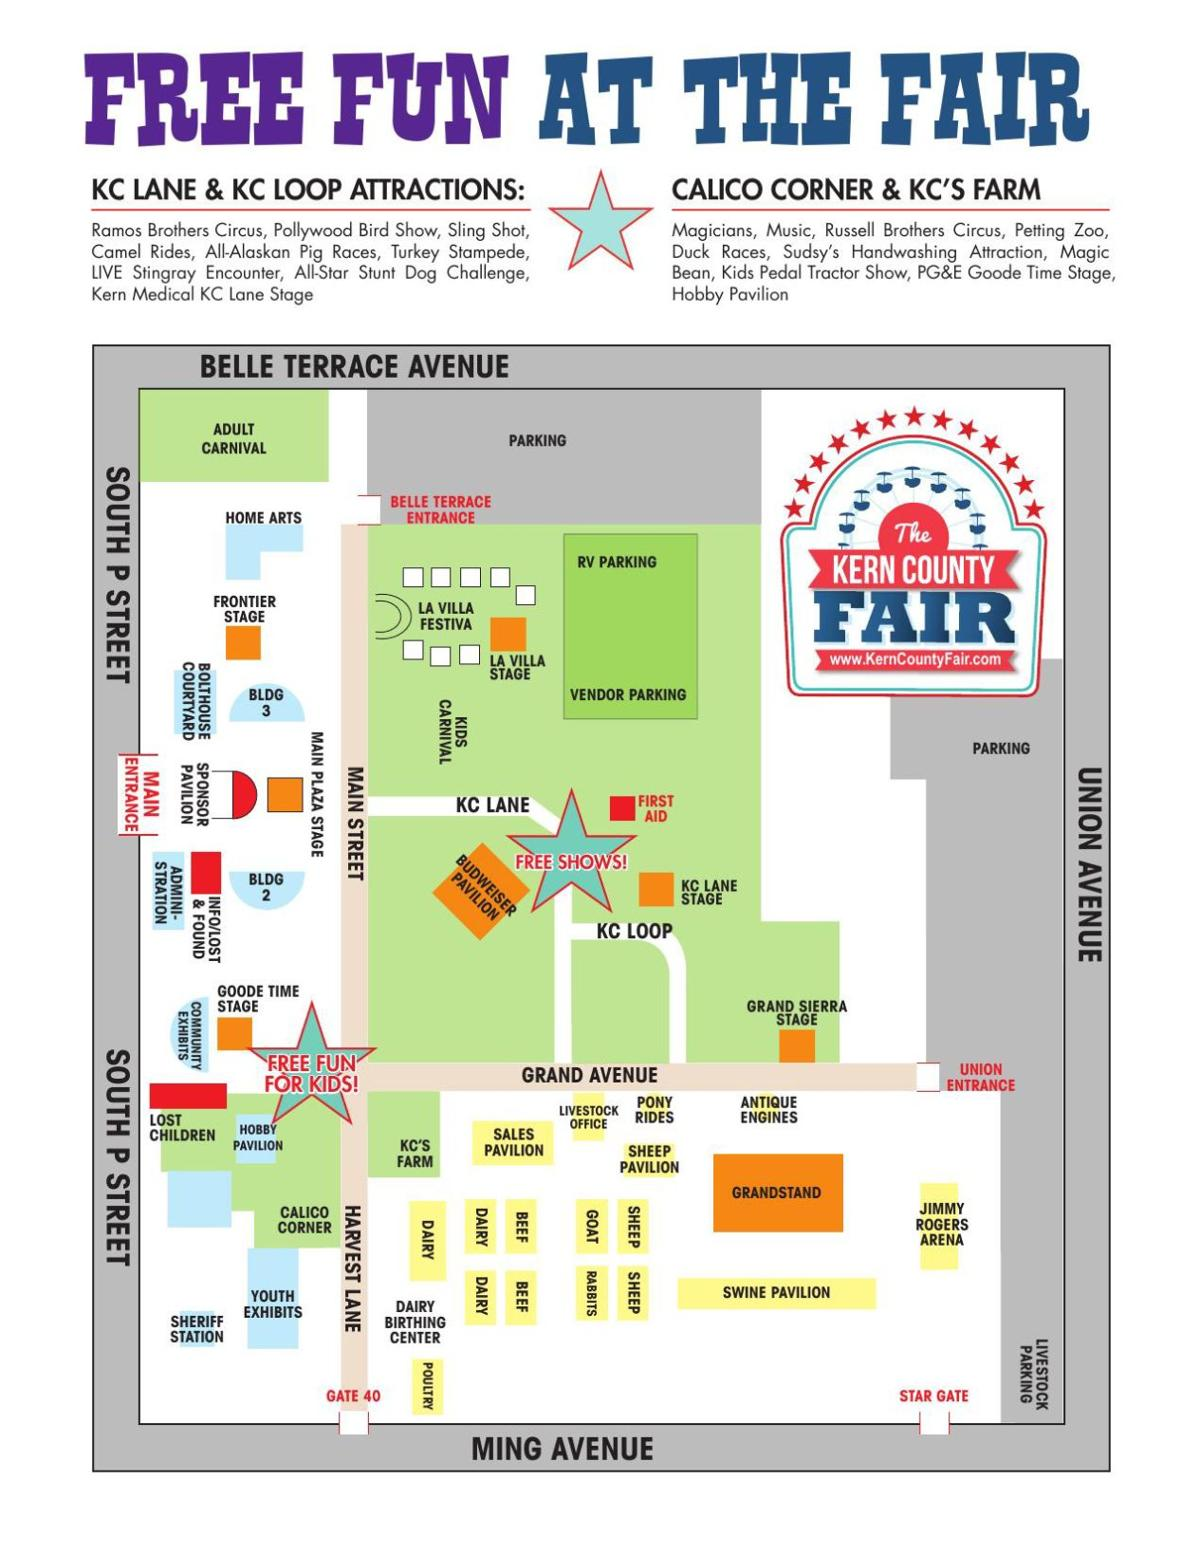 Check out a map of the Kern County Fair